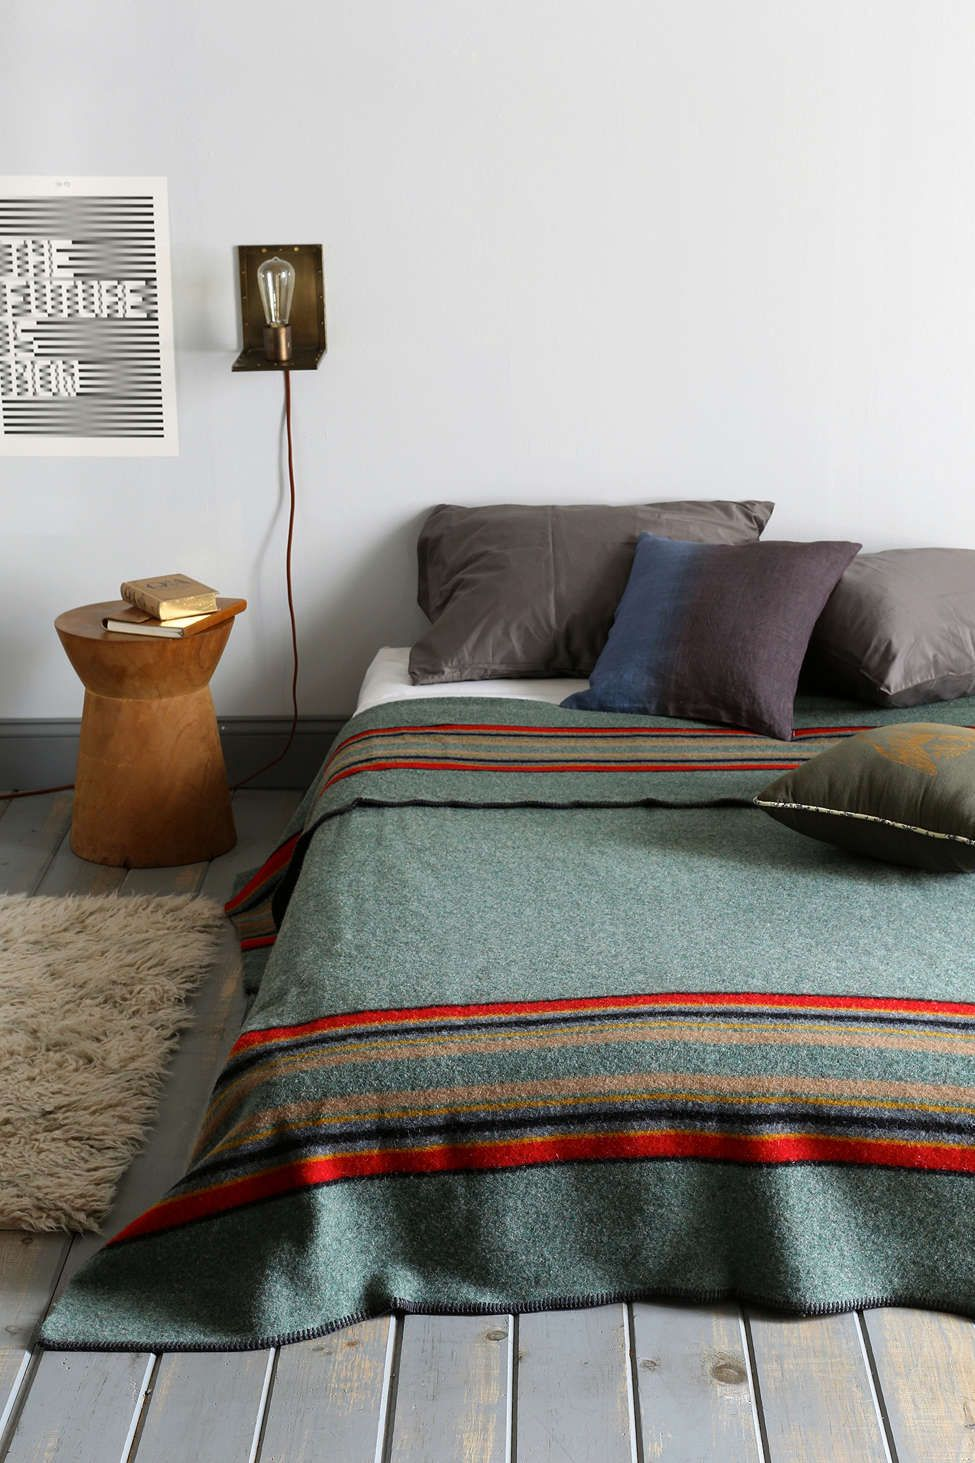 Beau Urban Outfitters   Pendleton Camp Blanket, Cheaper Than Regular Pendleton  Blankets